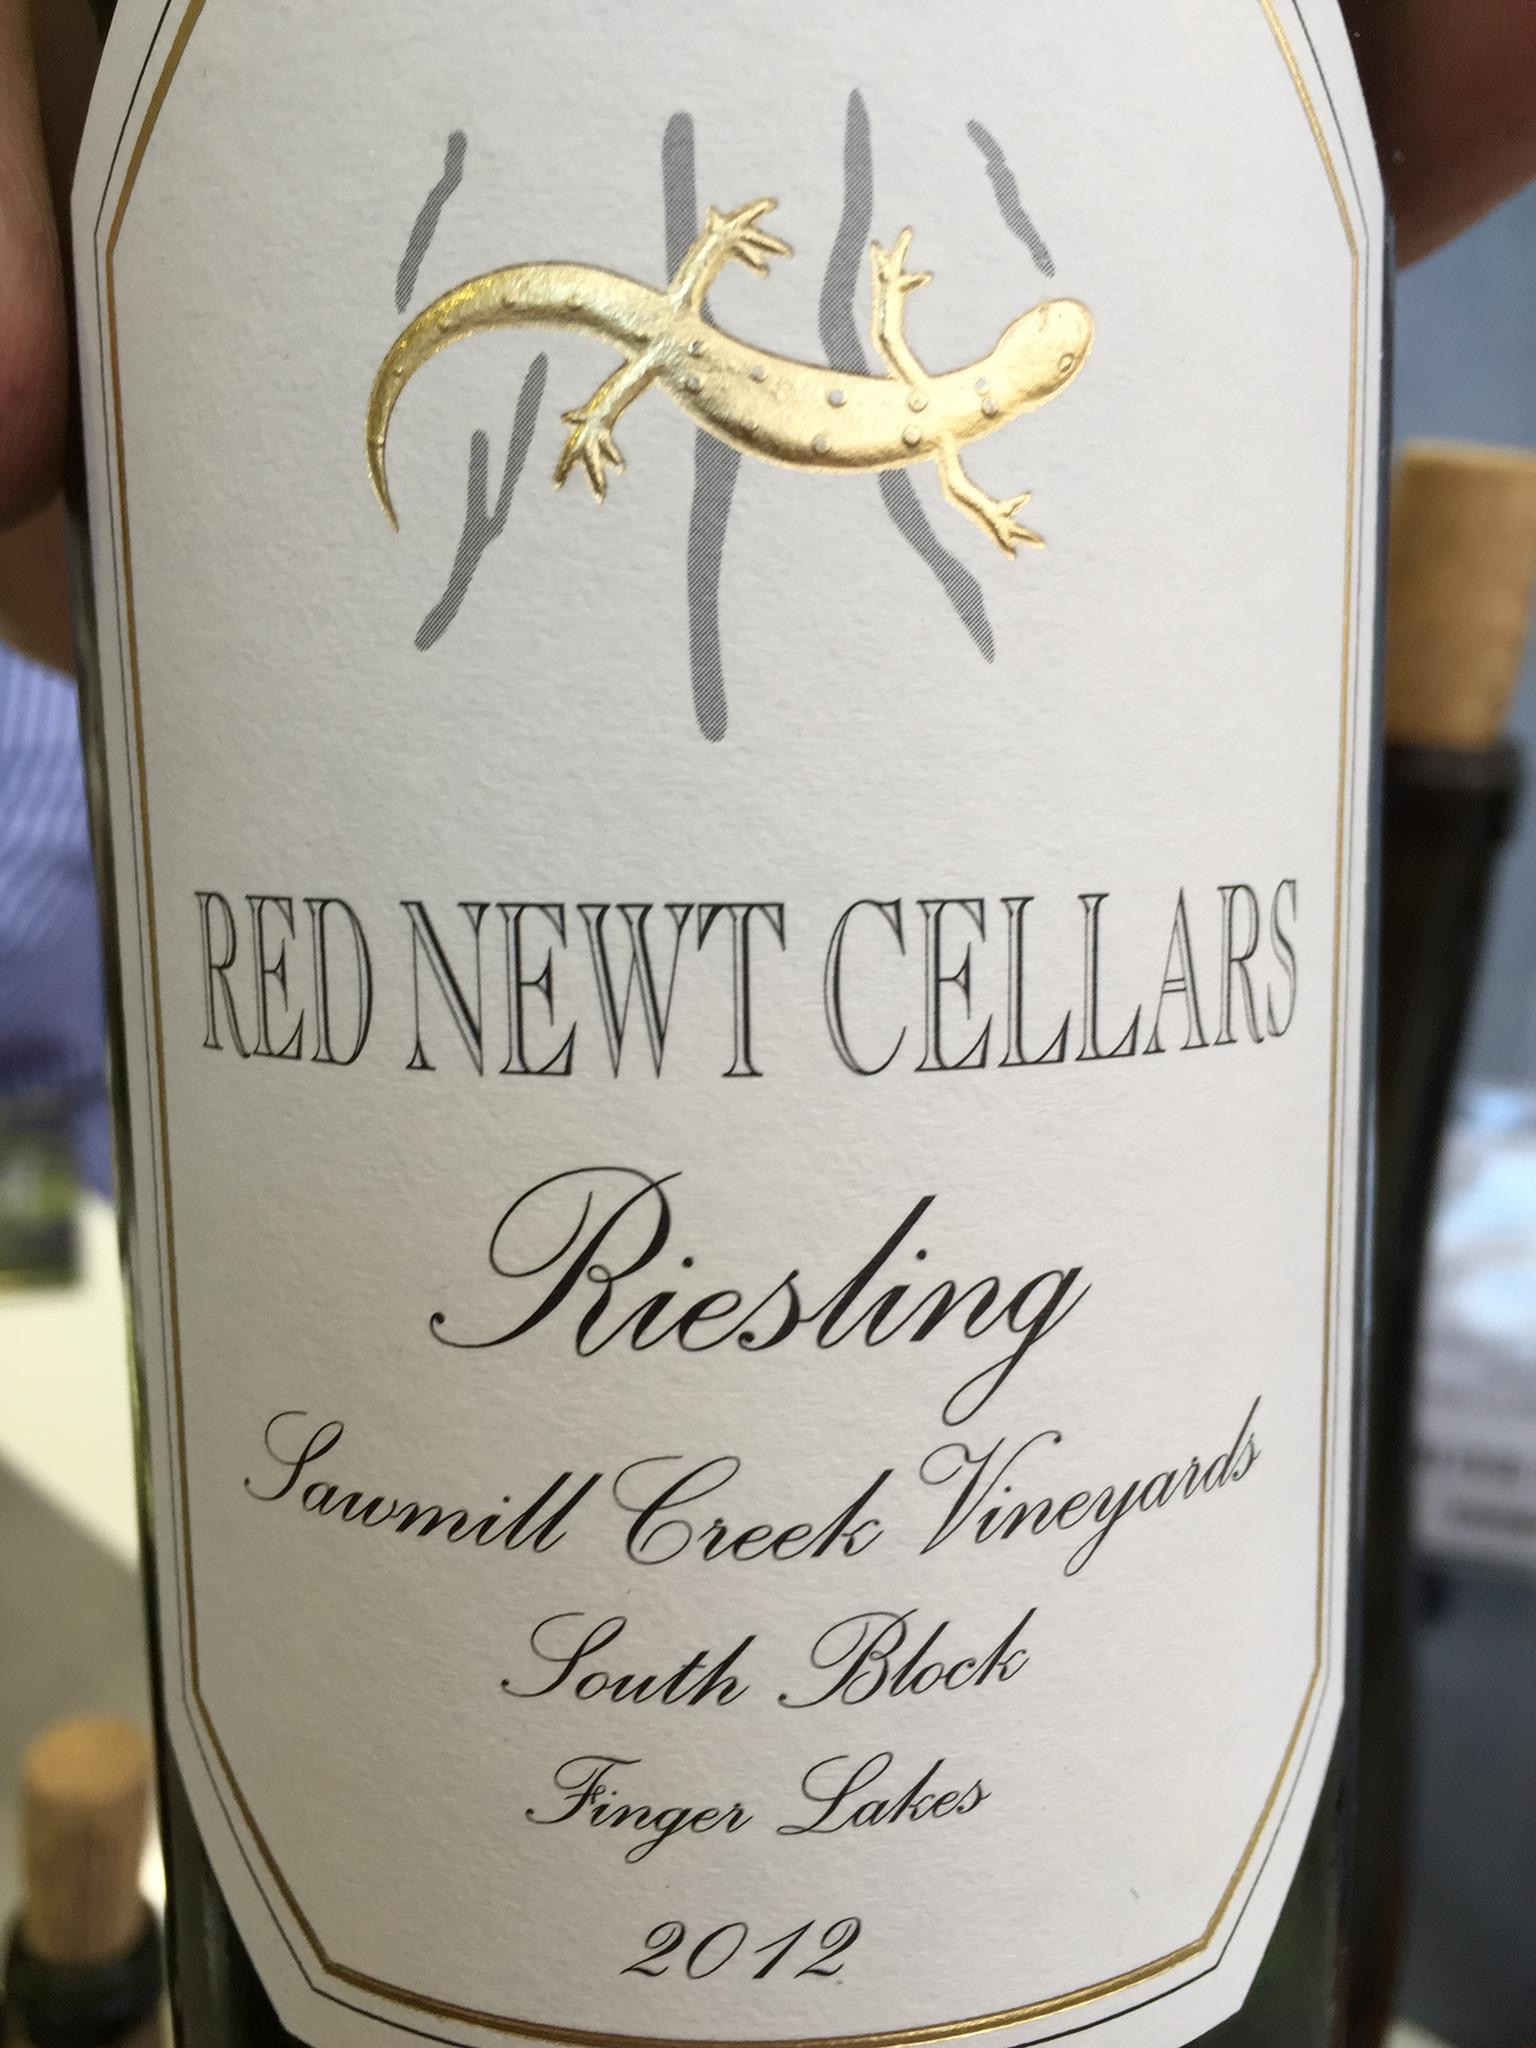 Red Newt Cellars – Riesling 2012 – Sawmill Creek Vineyards – South Block – Finger Lakes